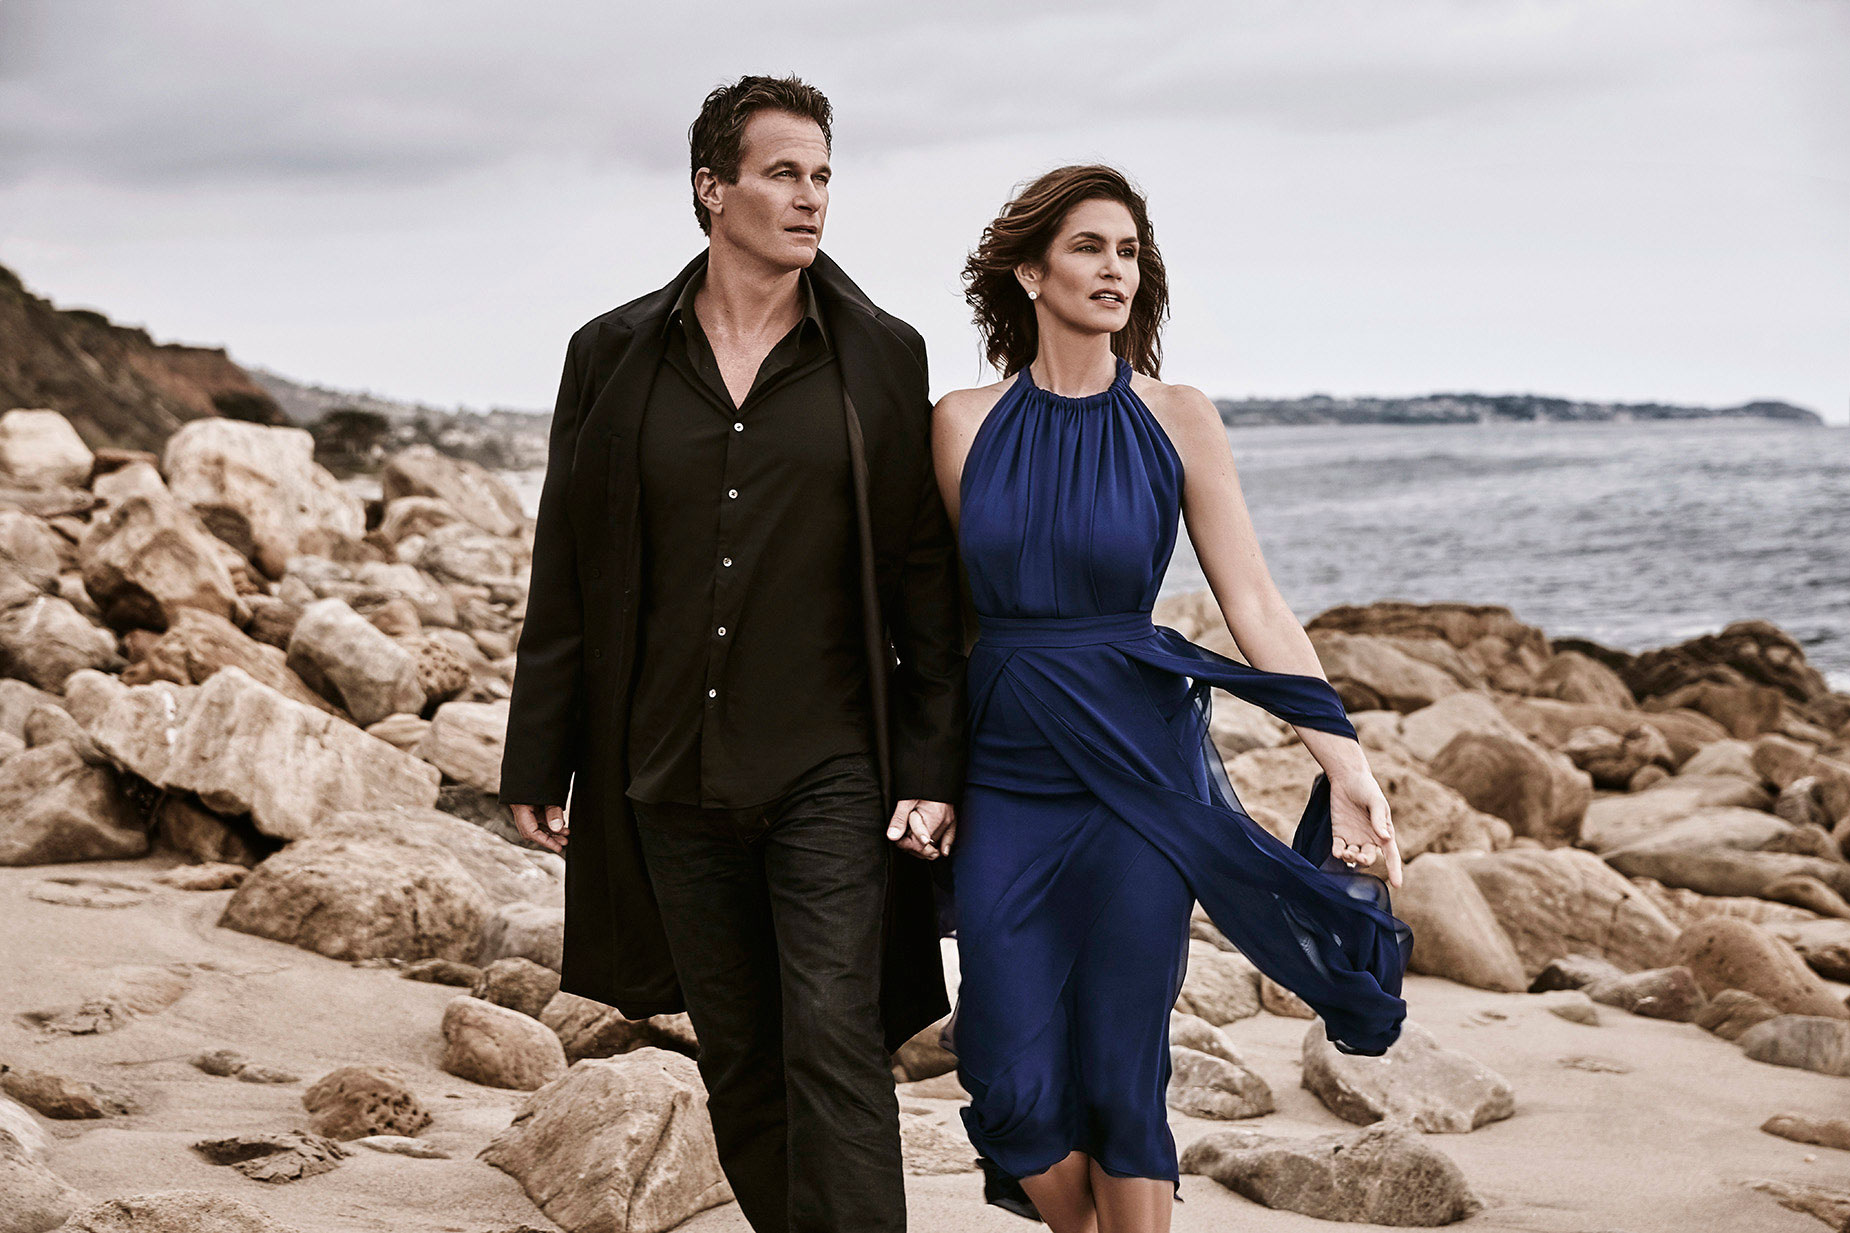 Cindy_Crawford_+_Rande_Gerber_by_David_Needleman_06_142